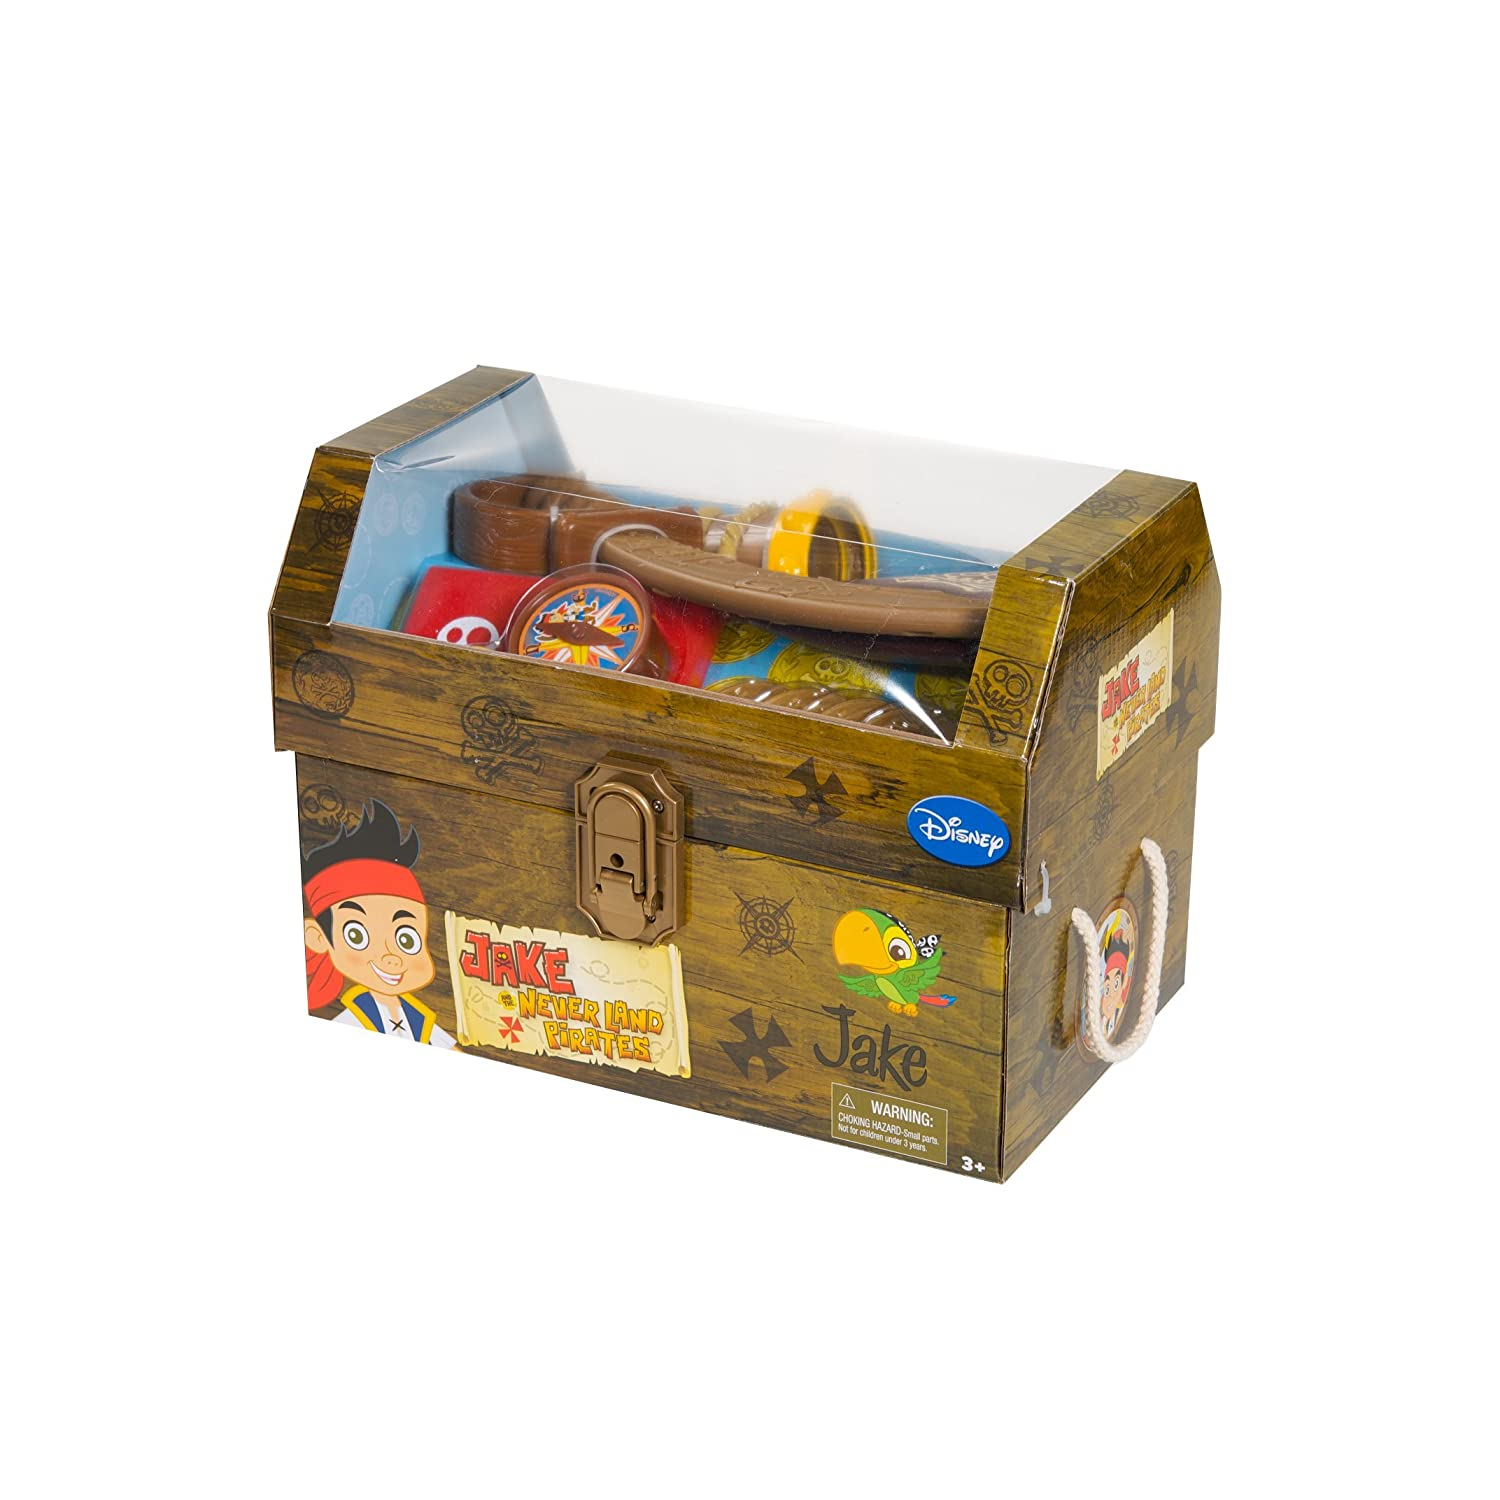 Toy Treasure Chest Beach : Jake and the neverland pirates treasure chest toy